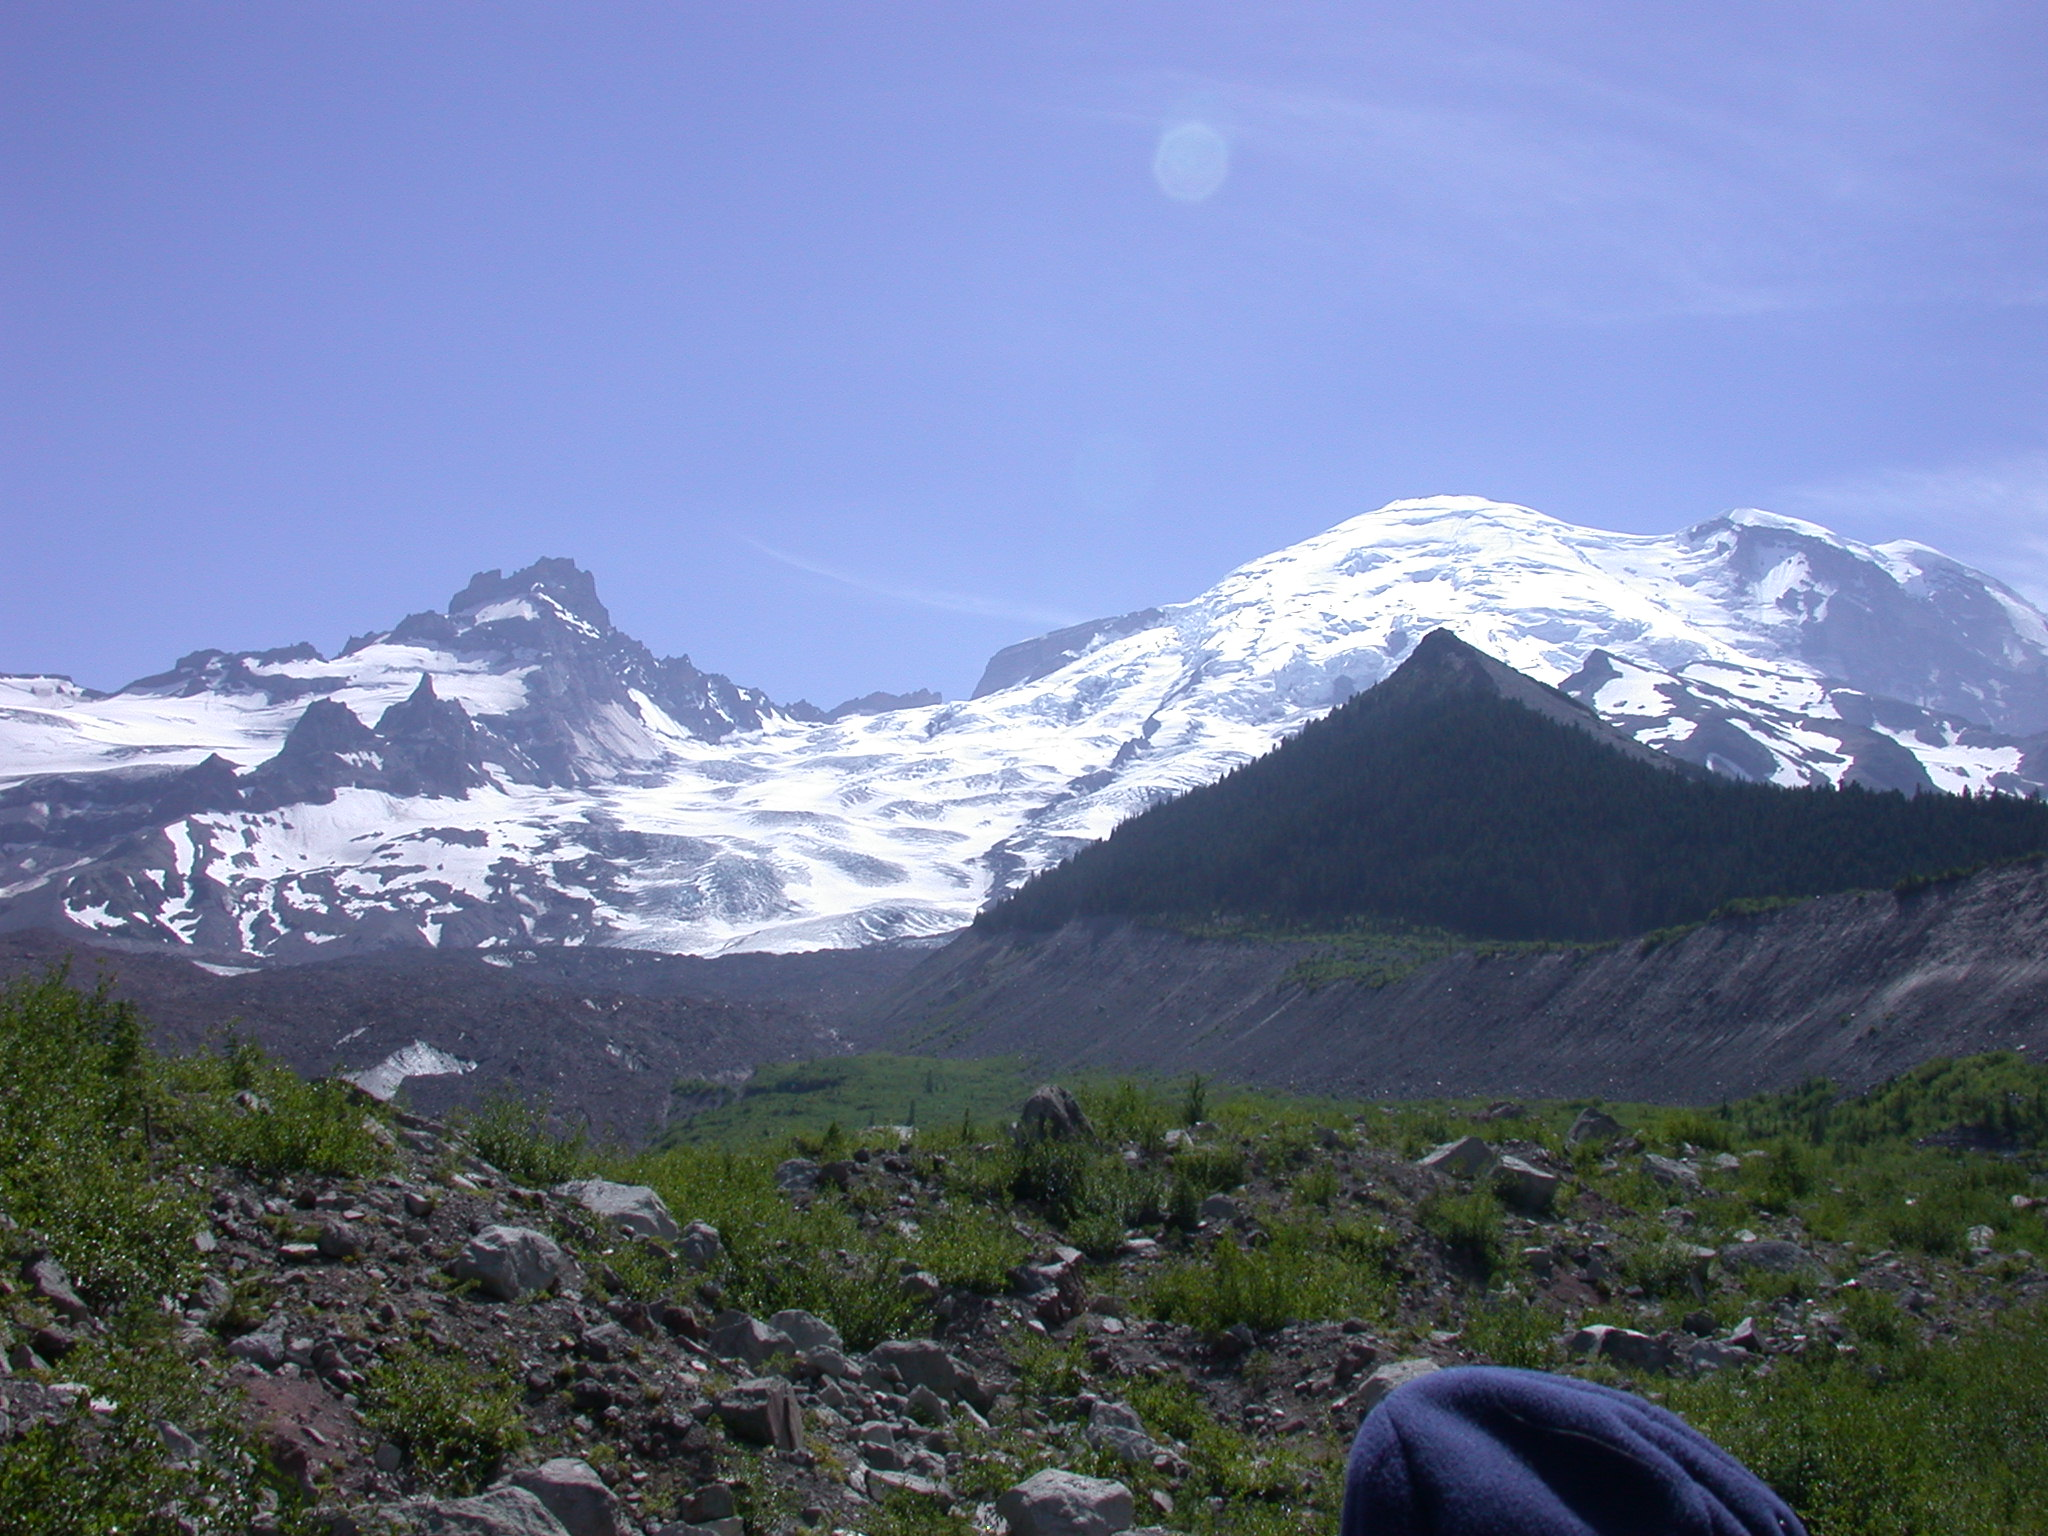 Glacial Pyramidal Goodness on Mount Rainier